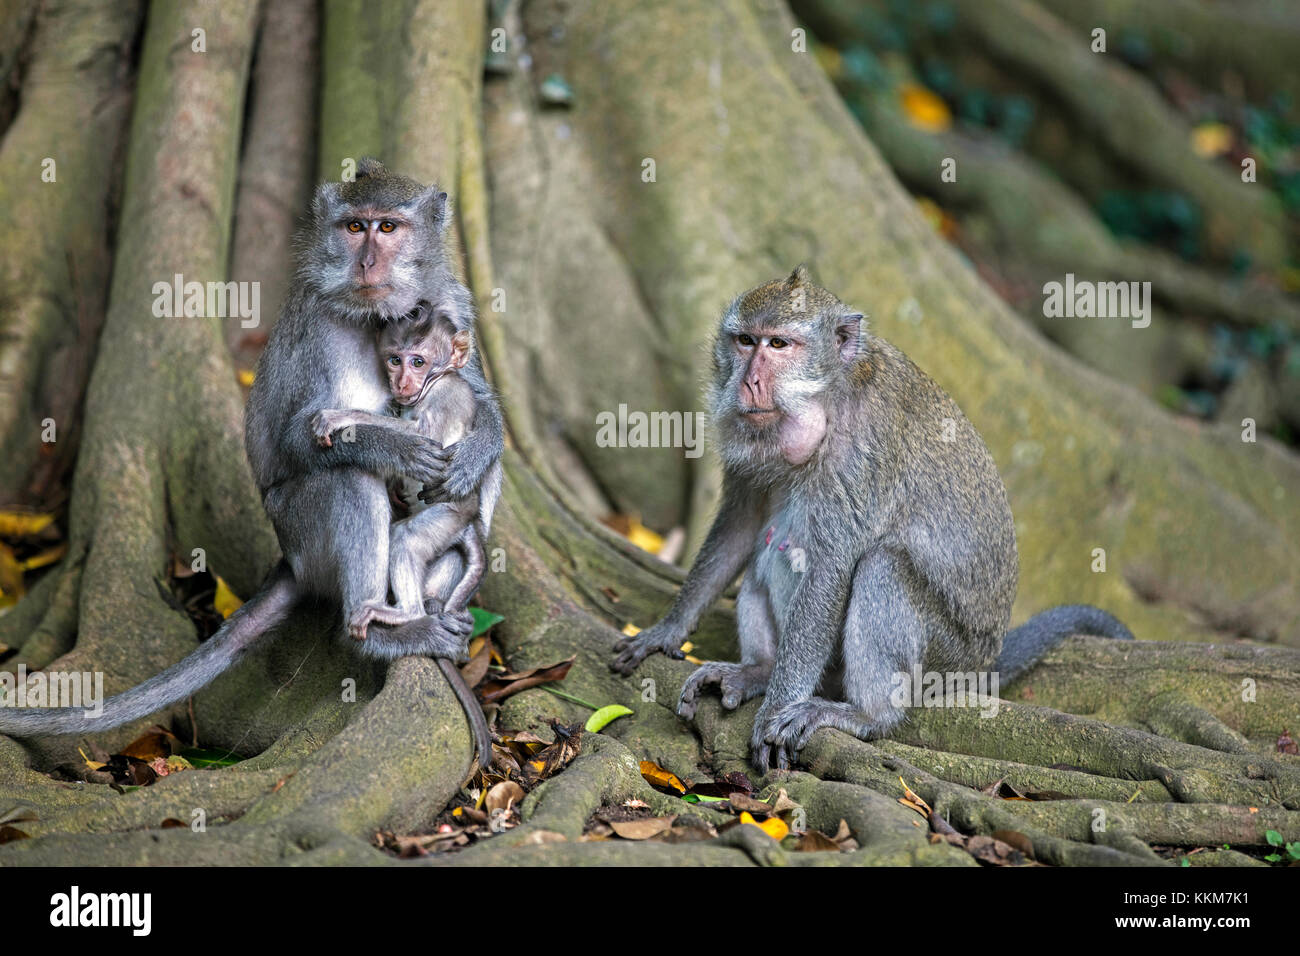 Family of crab-eating macaques / Balinese long-tailed macaque (Macaca fascicularis) with juvenile on the island - Stock Image